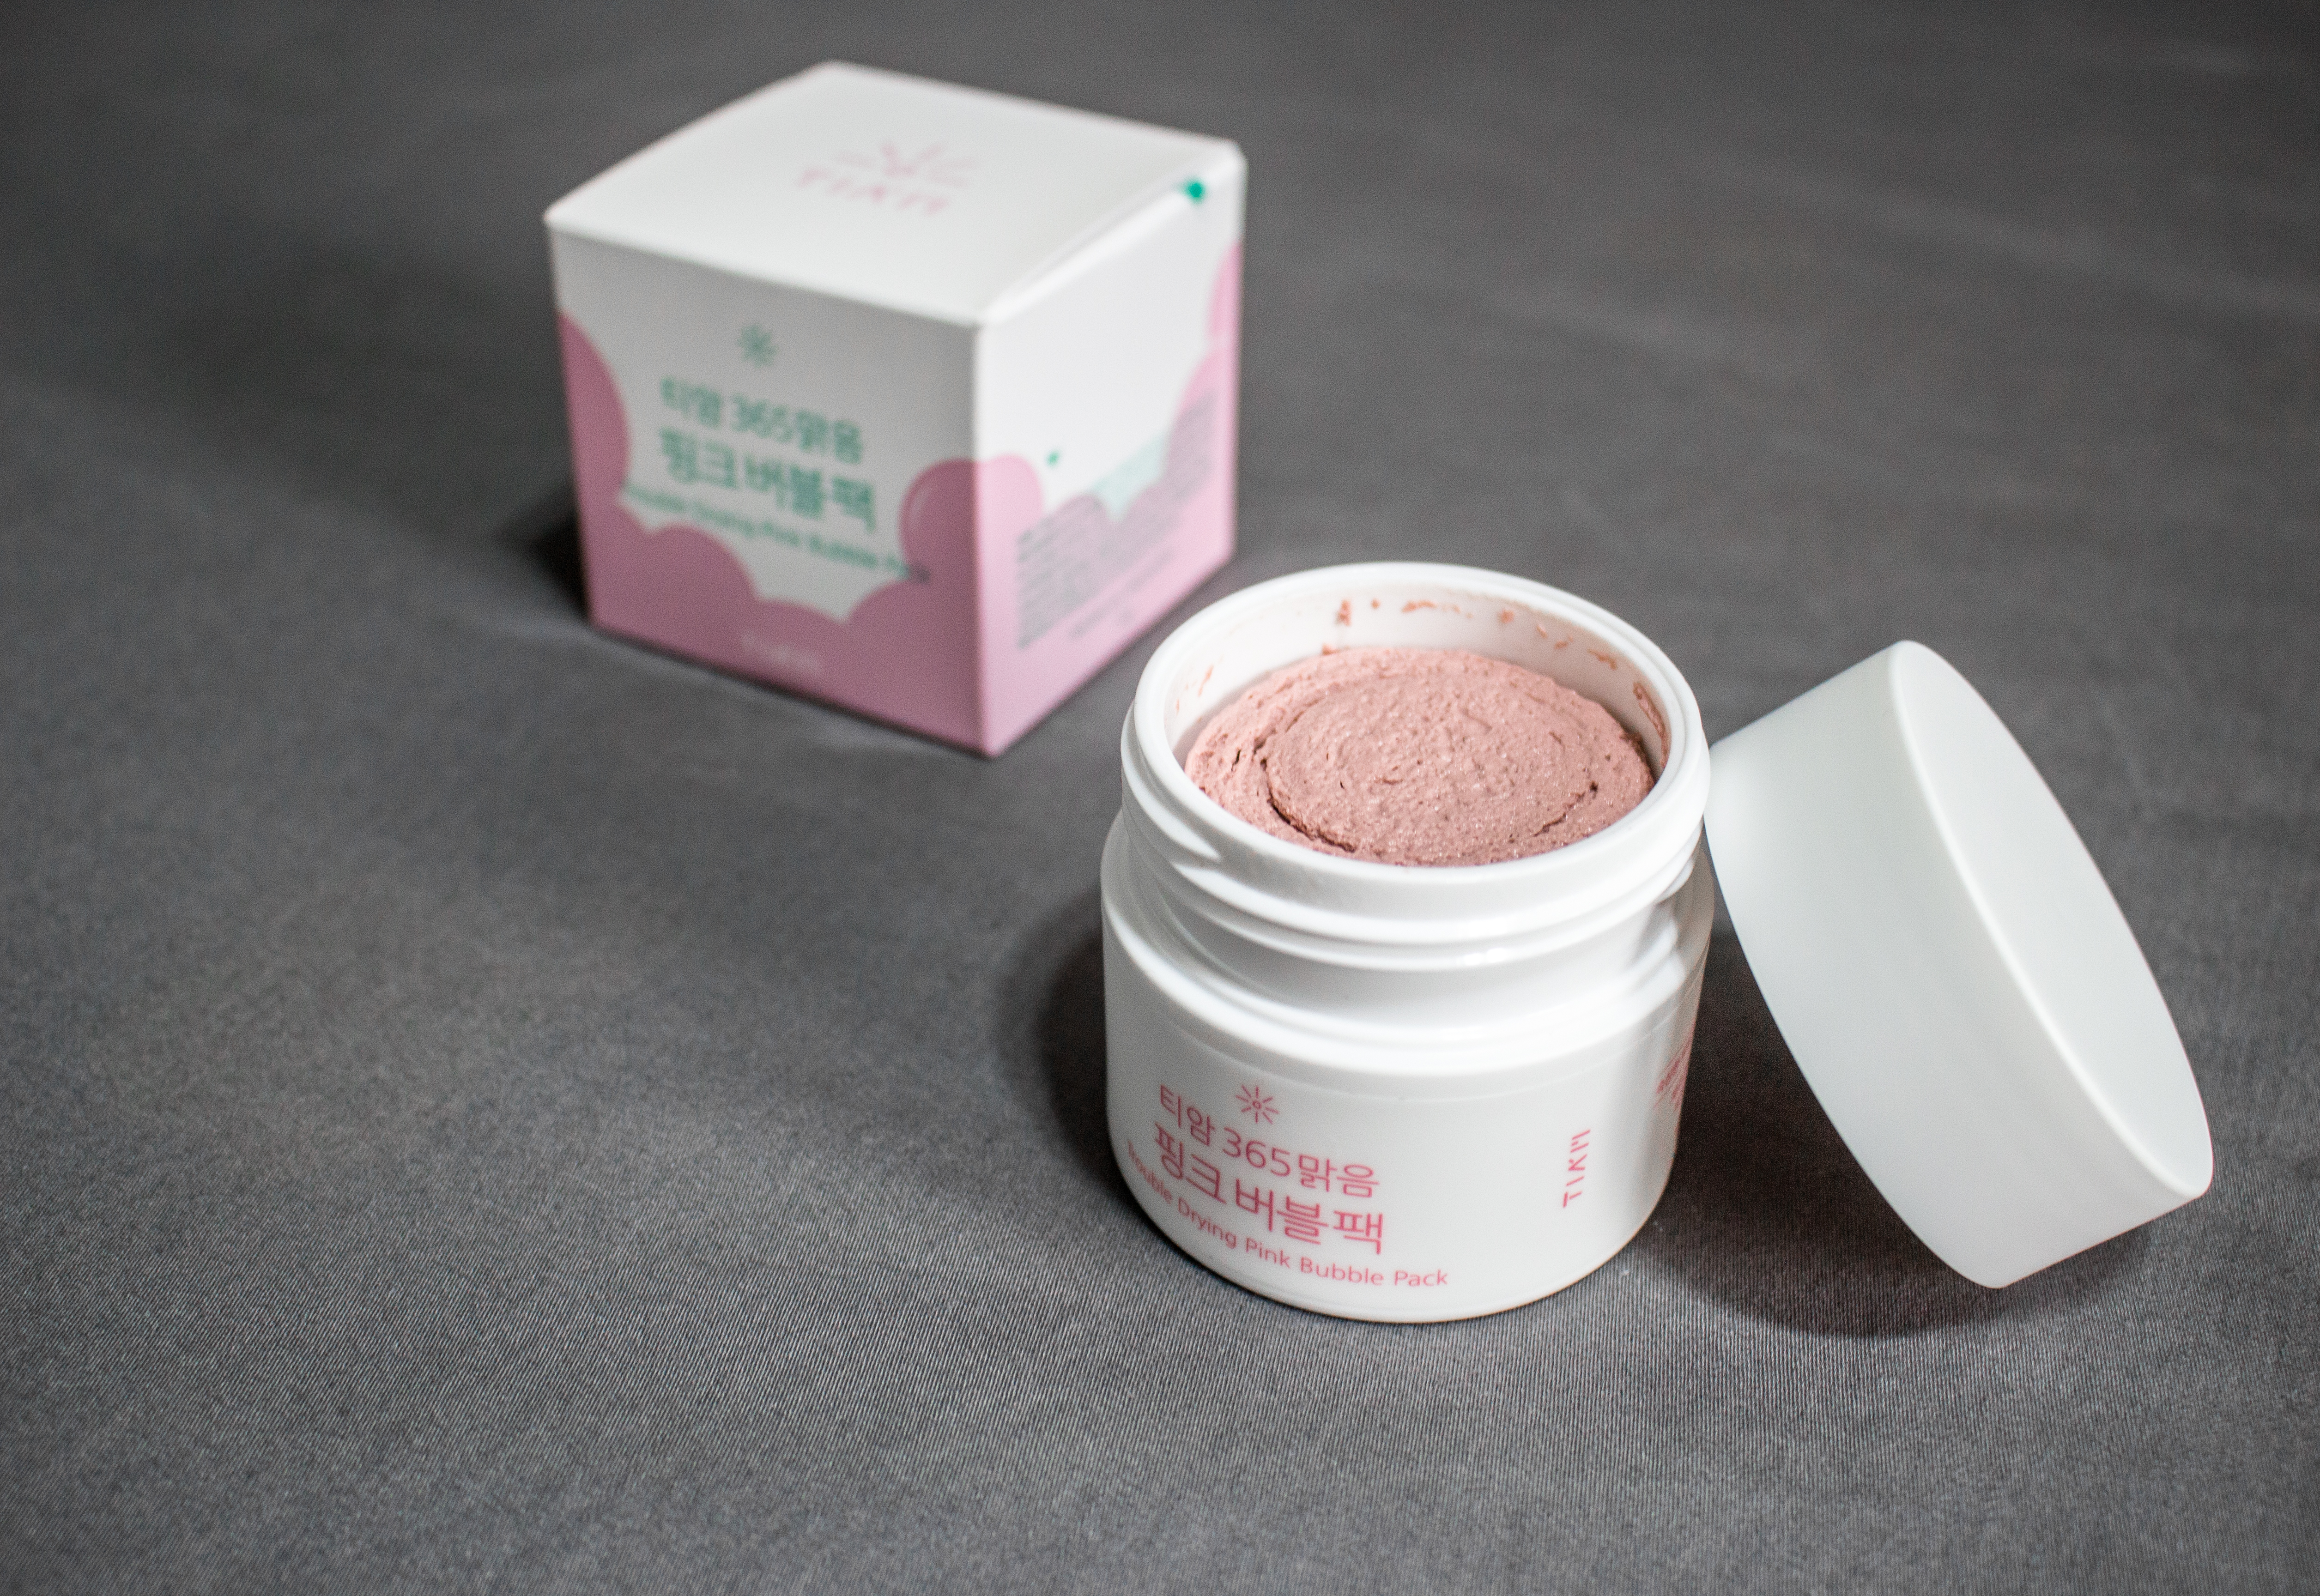 Jolse_TIAM Trouble Drying Pink Bubble Pack Review